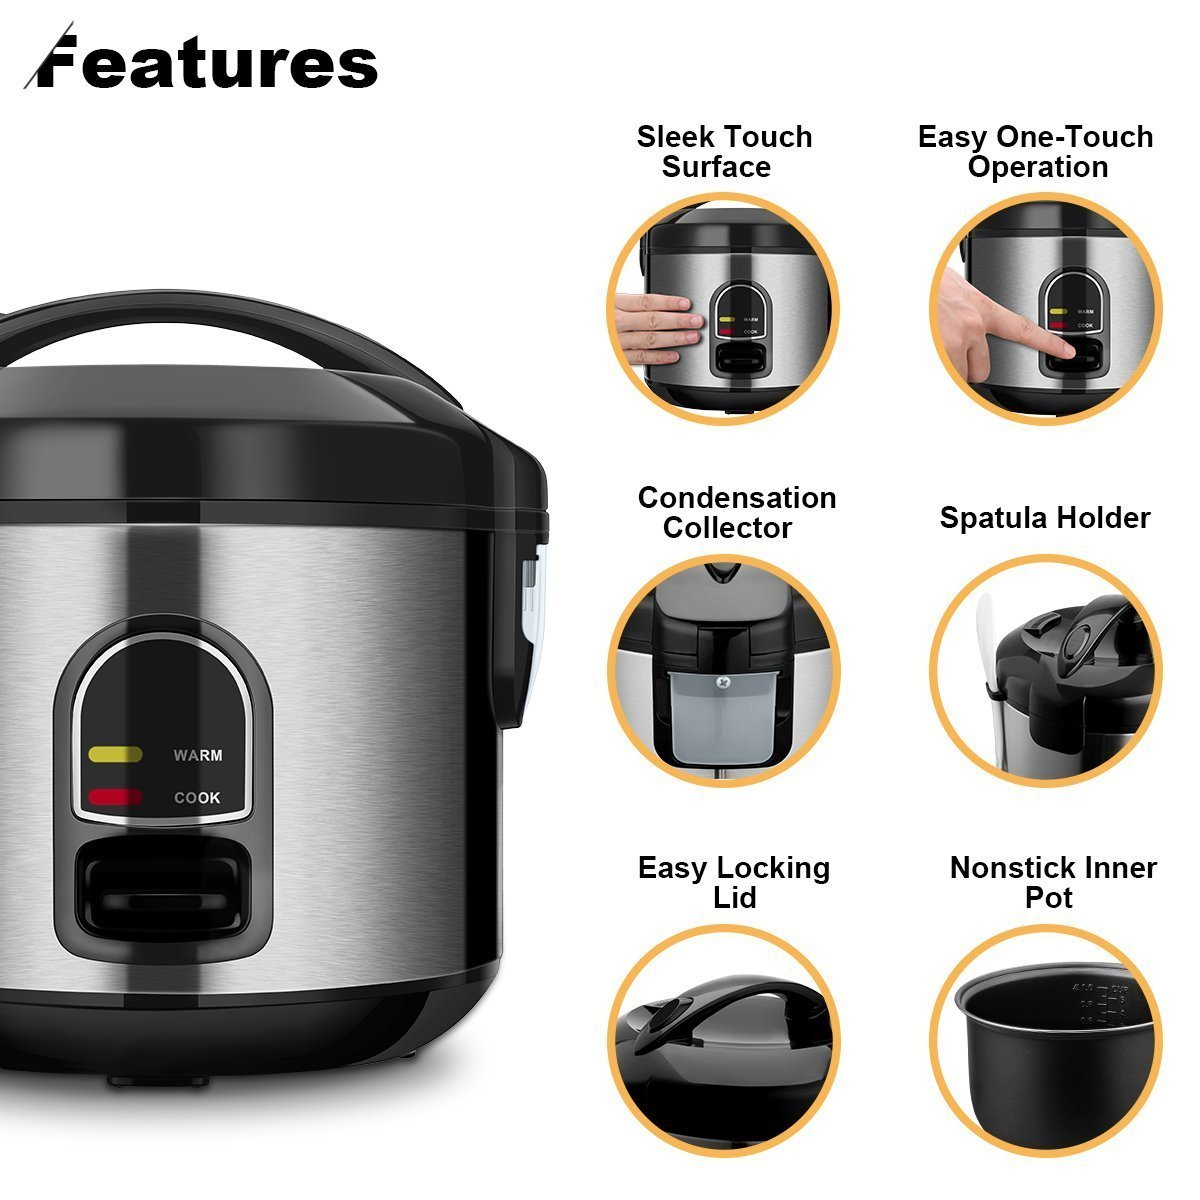 Small Rice Cooker Food Steamer, Home Gizmo 5-Cup (Uncooked) Mini Rice Cooker Multi-Food Steamer for Grains and Hot Cereal with One-Touch Control and Automatic Keep Warm Function by Home Gizmo (Image #3)